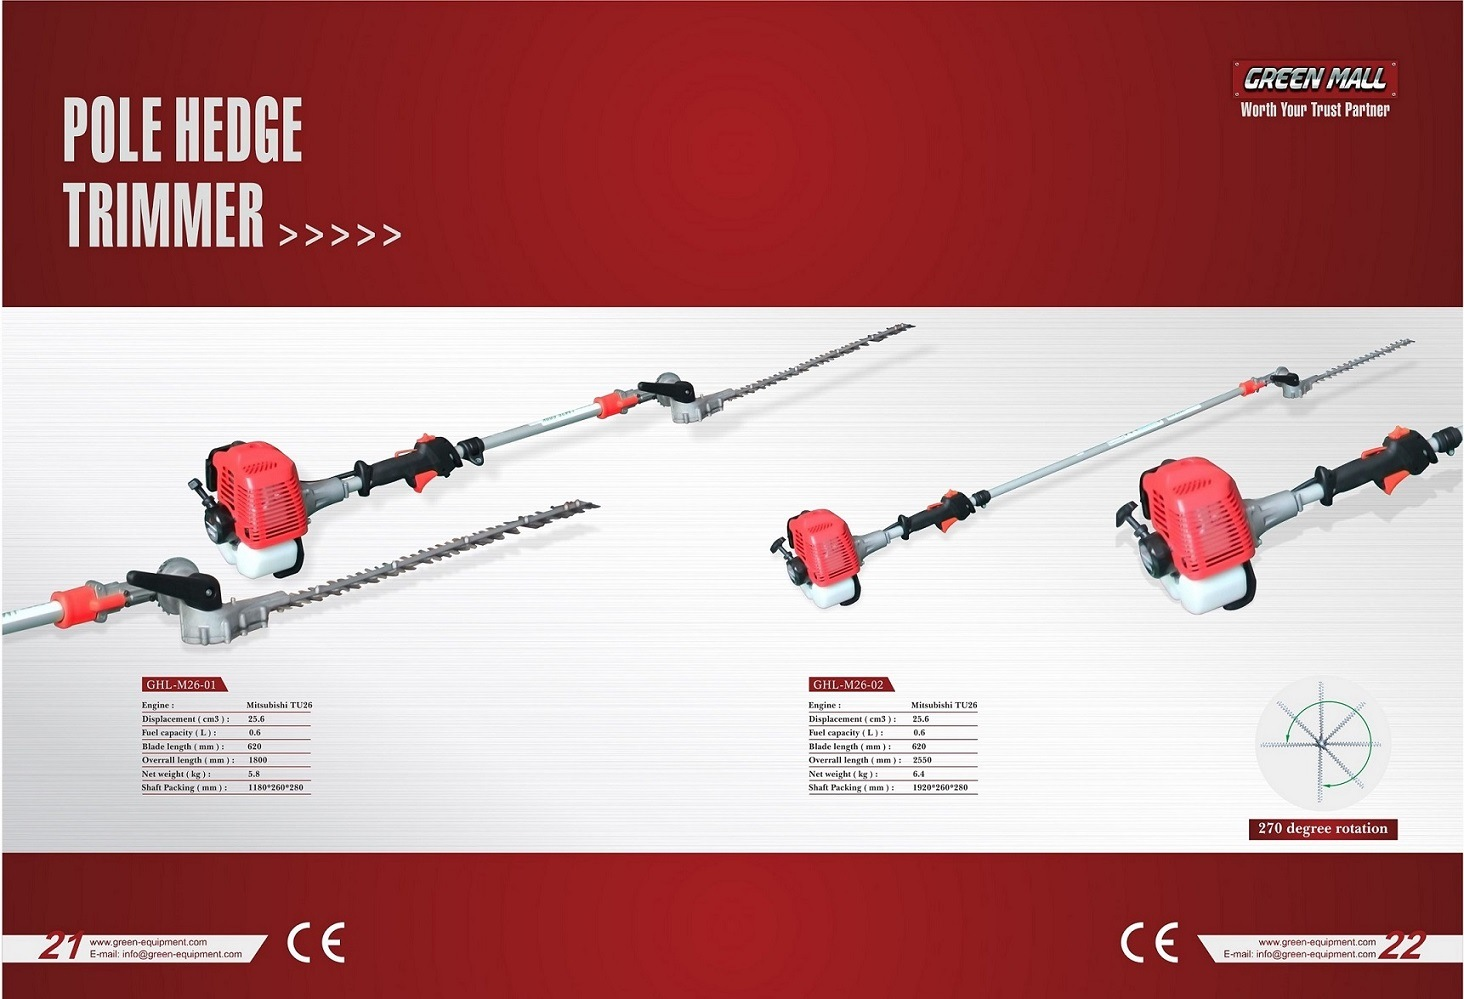 Pole Hedge Trimmer Powered by Mitsubishi Engine (TU26) (GHL-M26-01)